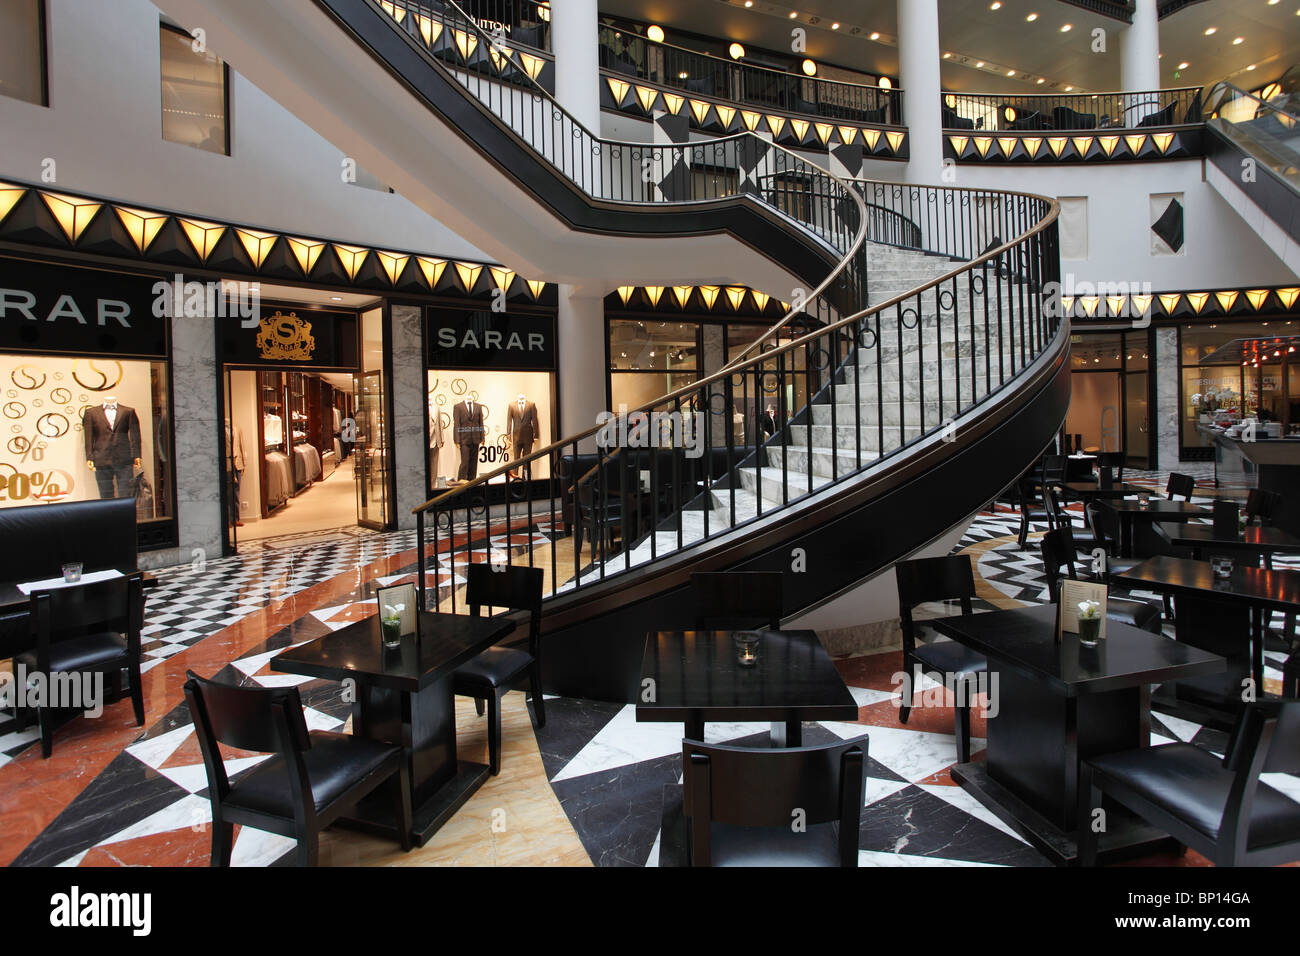 Germany, Berlin, Quartier 206 shopping complex - Stock Image